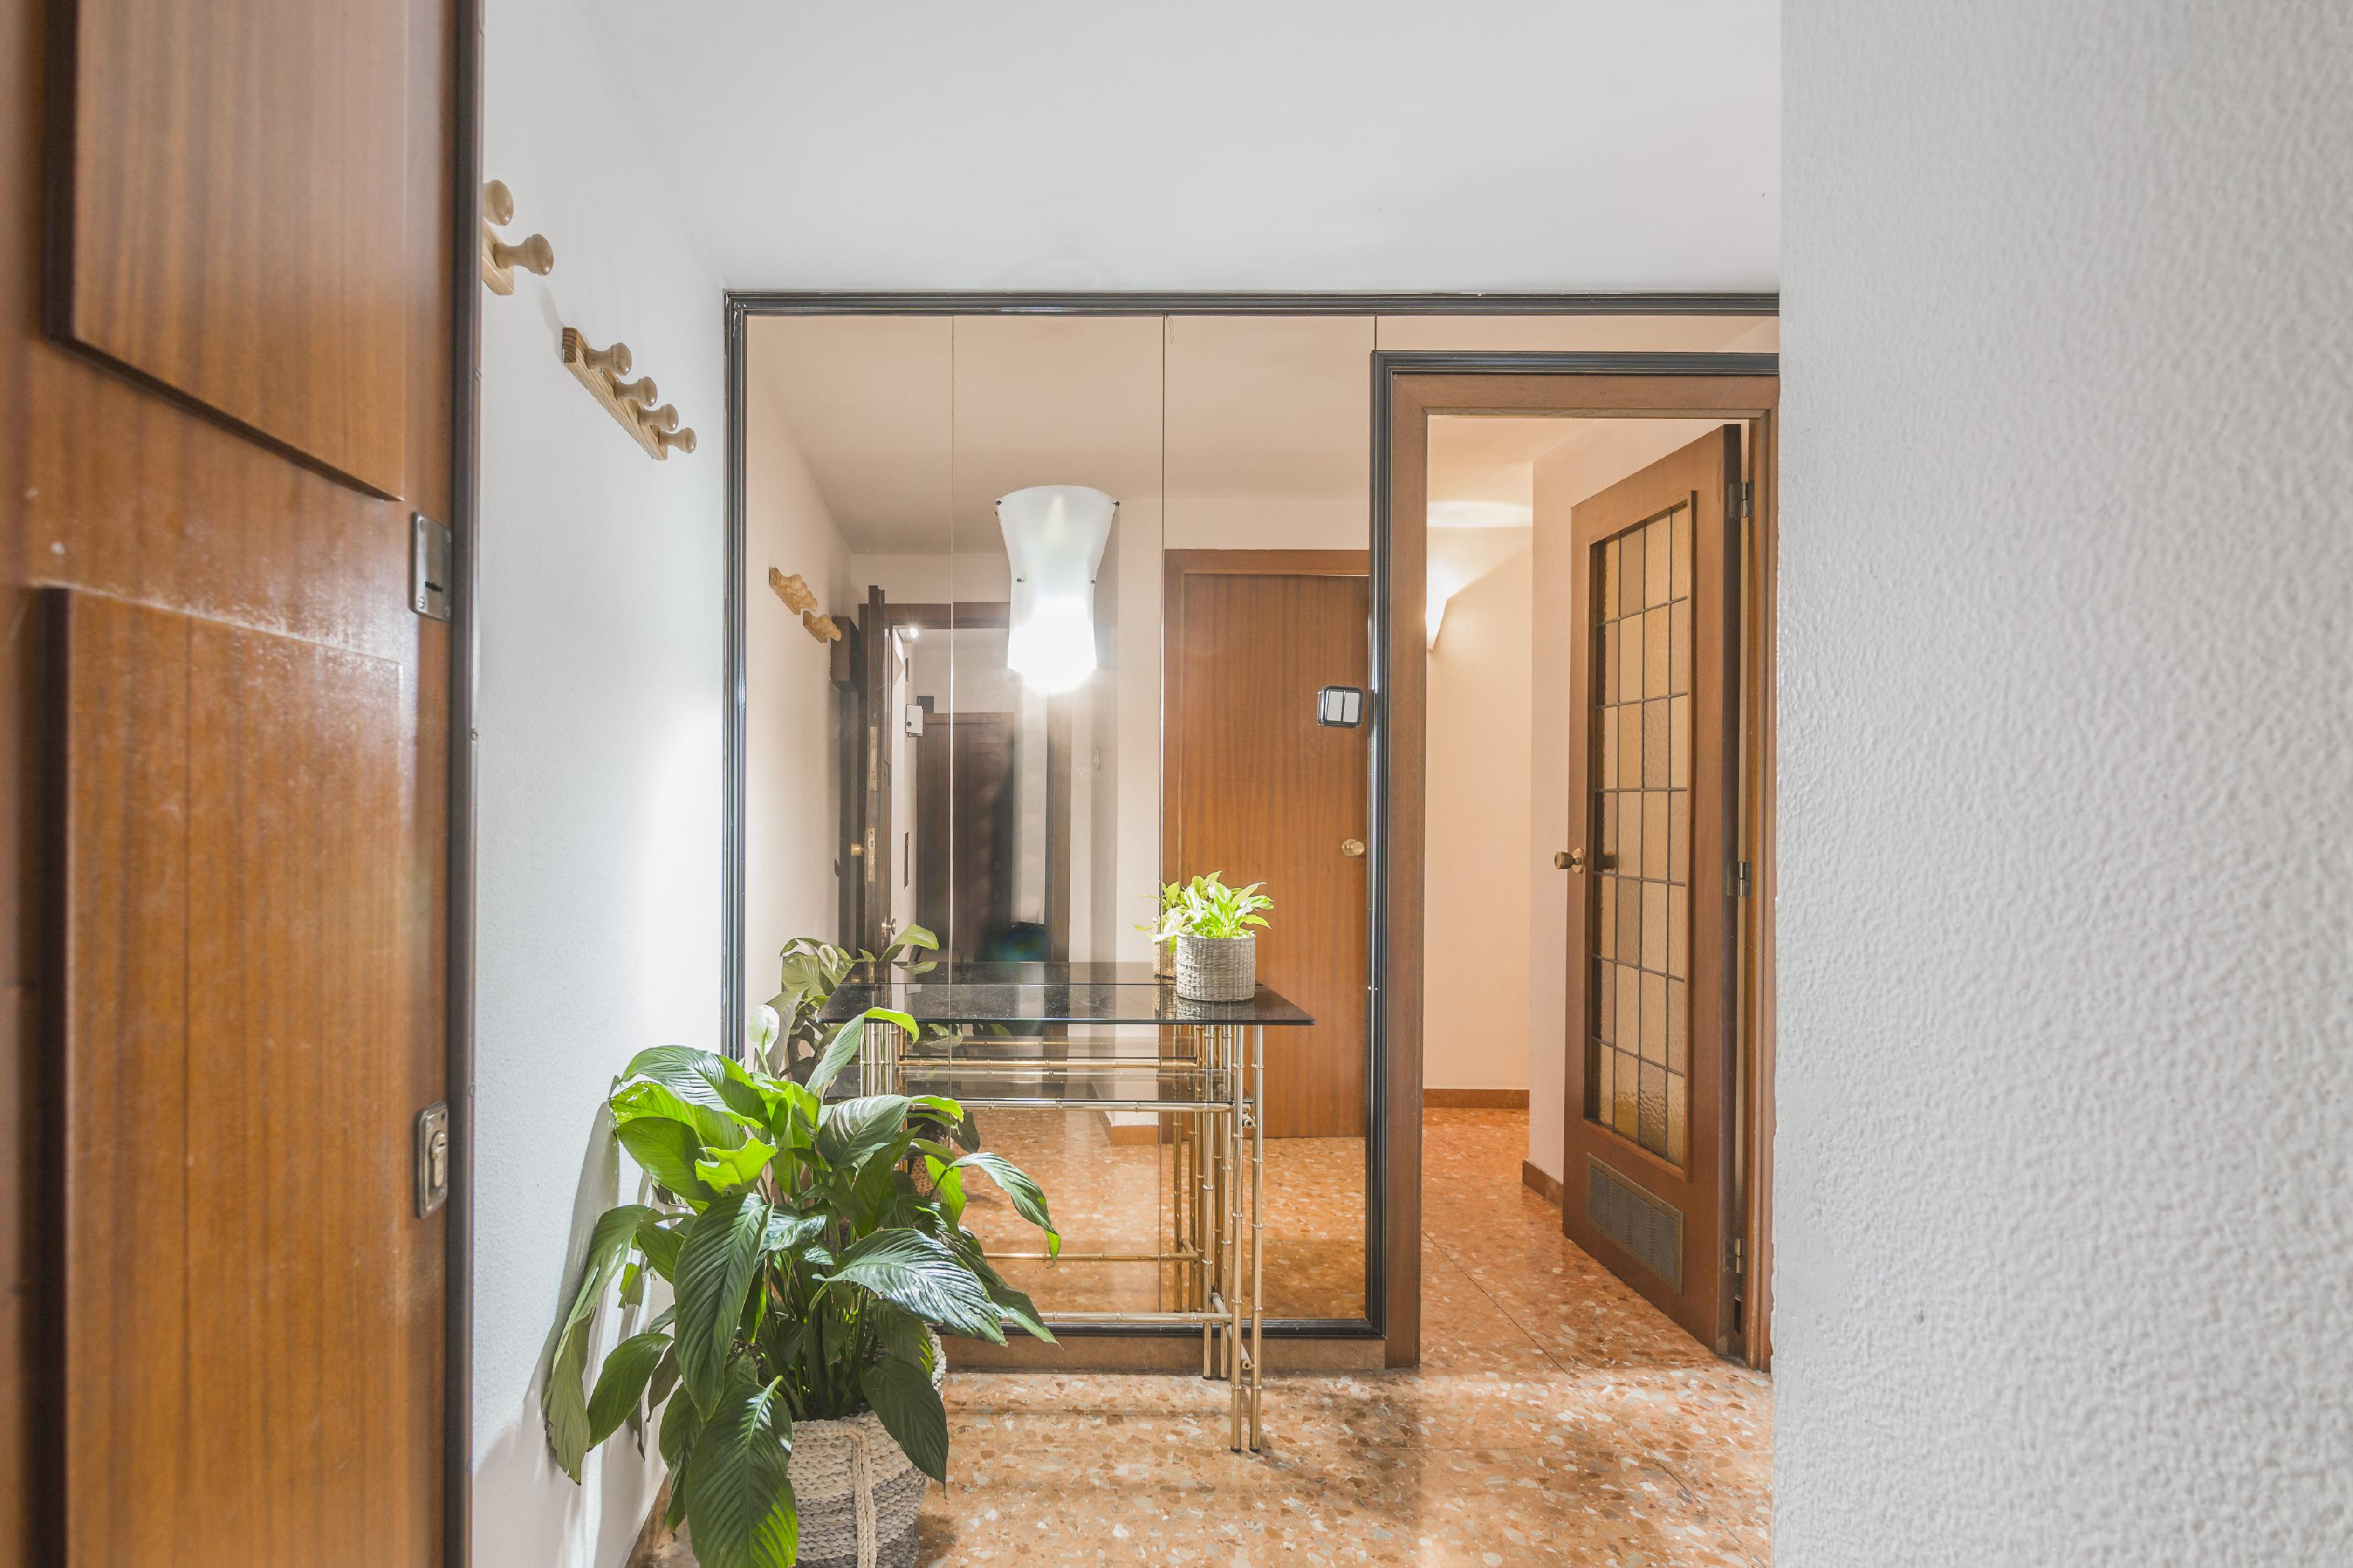 239426 Flat for sale in Les Corts, Les Corts 16